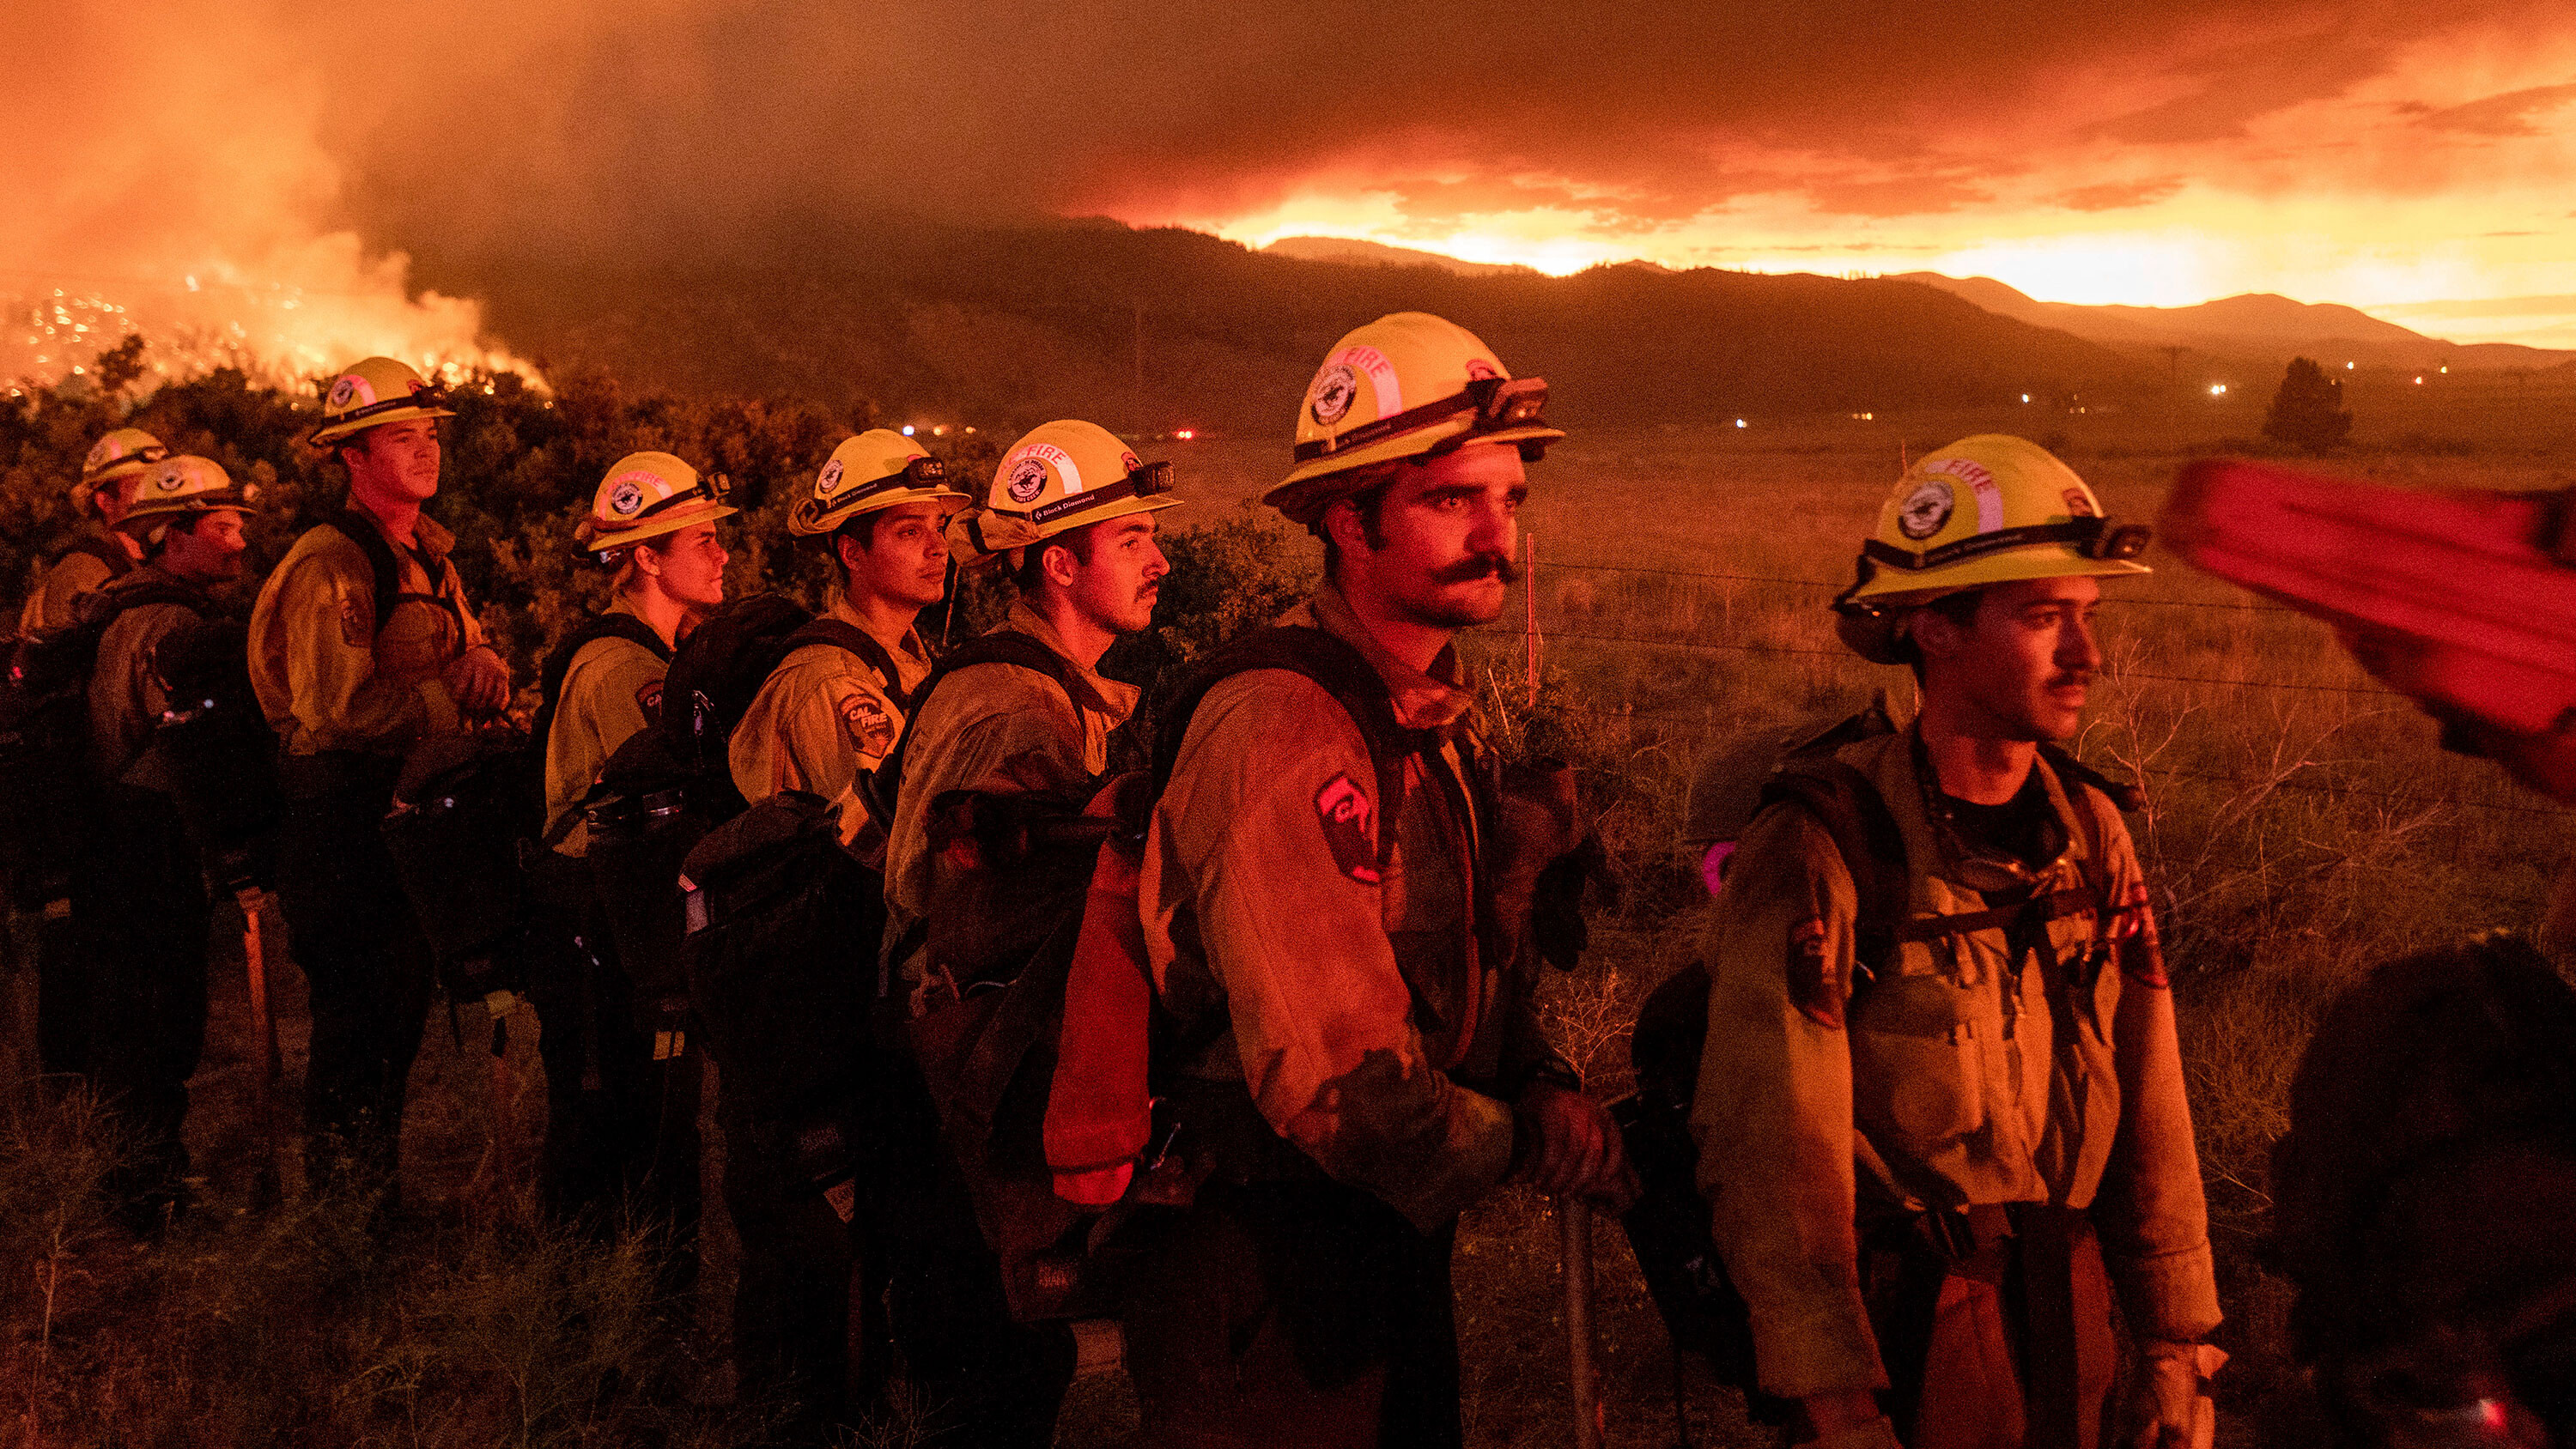 This California firefighter has been on the job 25 years. He's seen firsthand how wildfires have worsened